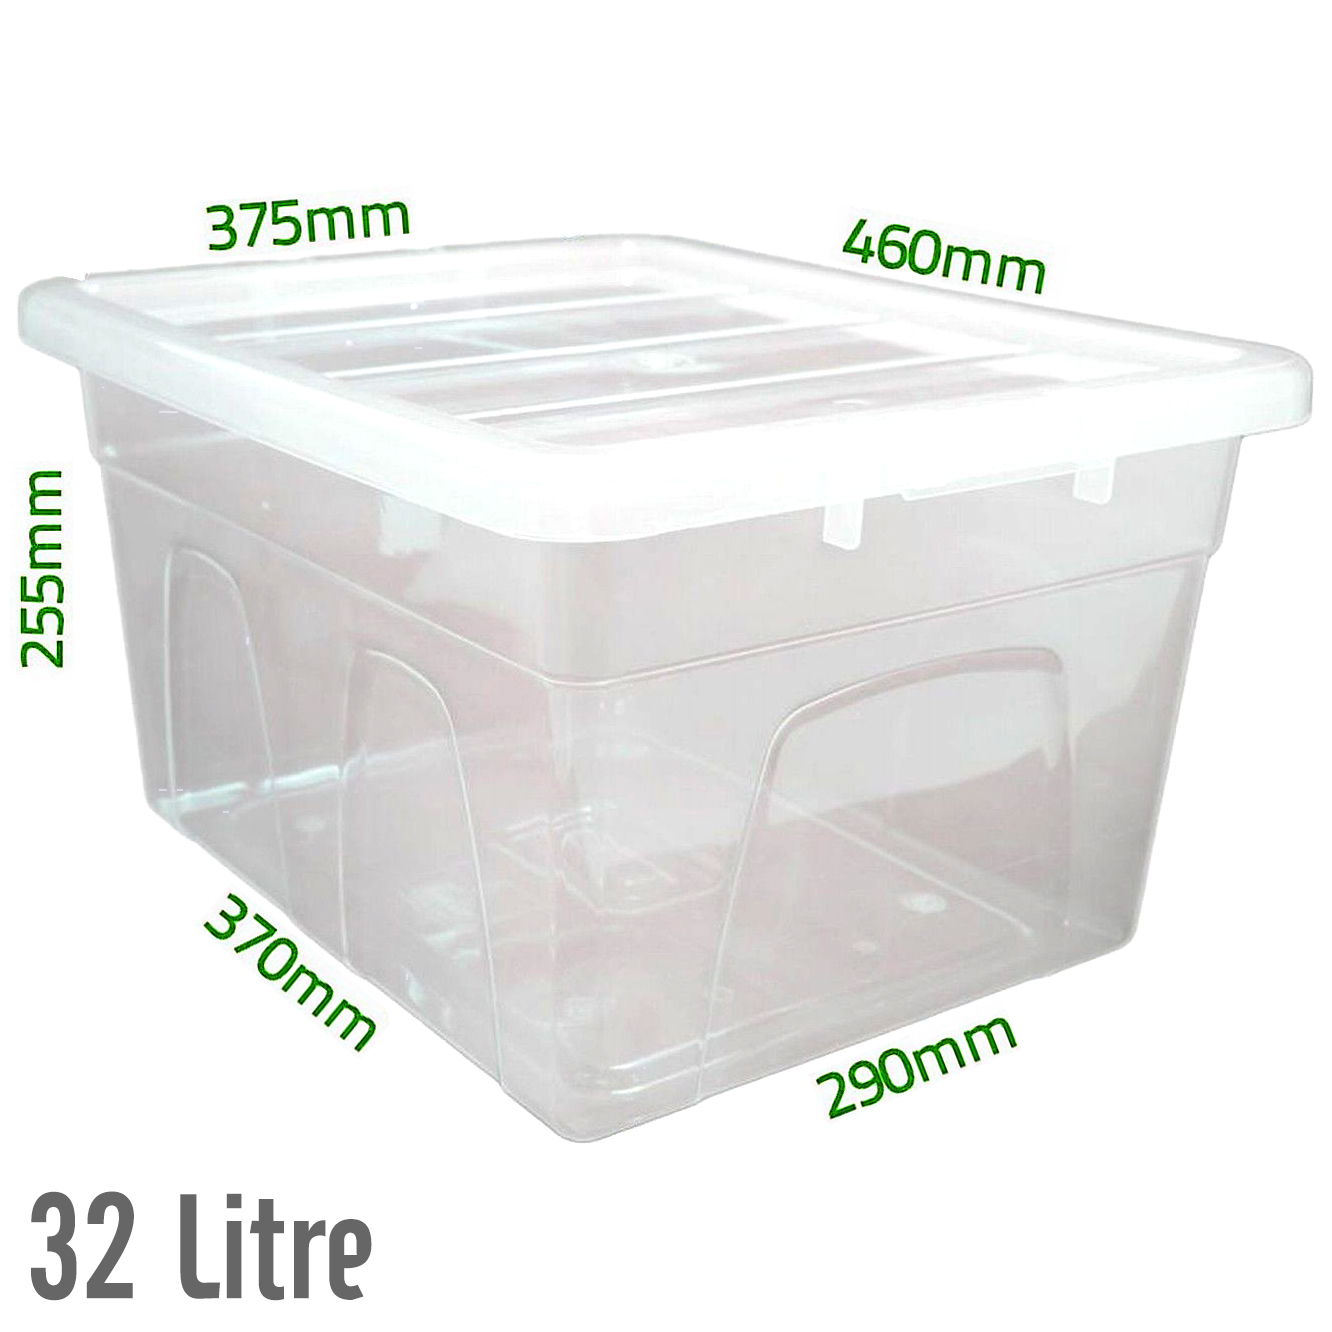 Acrylic Boxes With Lids Uk : Ltr clear strong plastic storage boxes tubs with lids